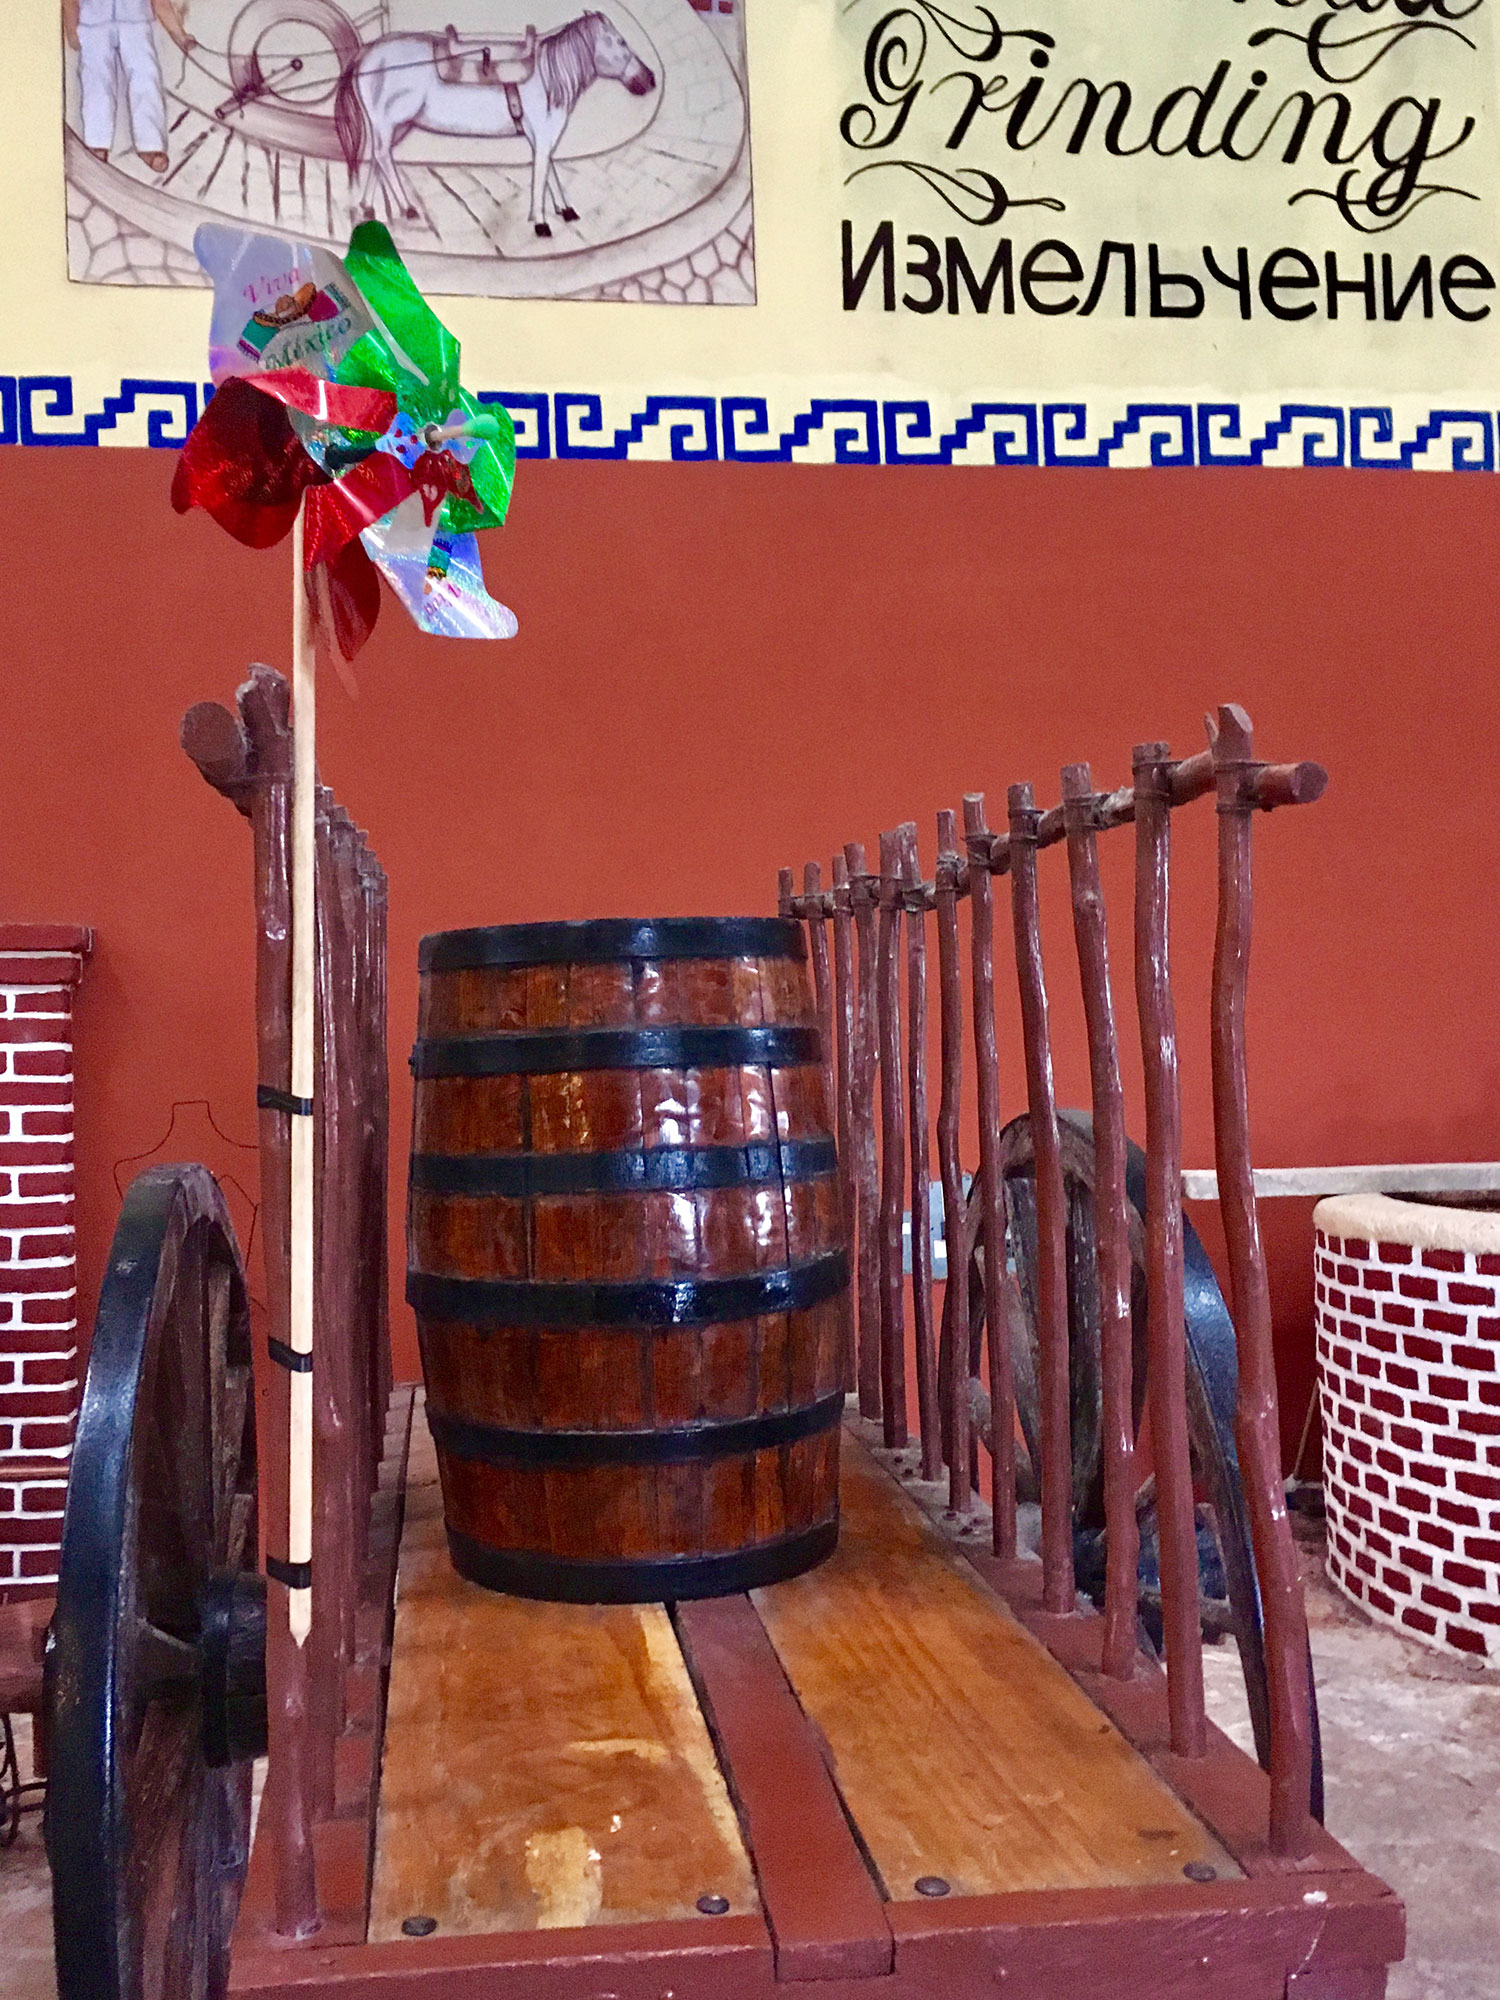 Hammocks_and_Ruins_What_to_Do_Mexico_Mayan_pyramid_tequila_Valladolid_tequileria_Mayapan_distillery_8.jpg